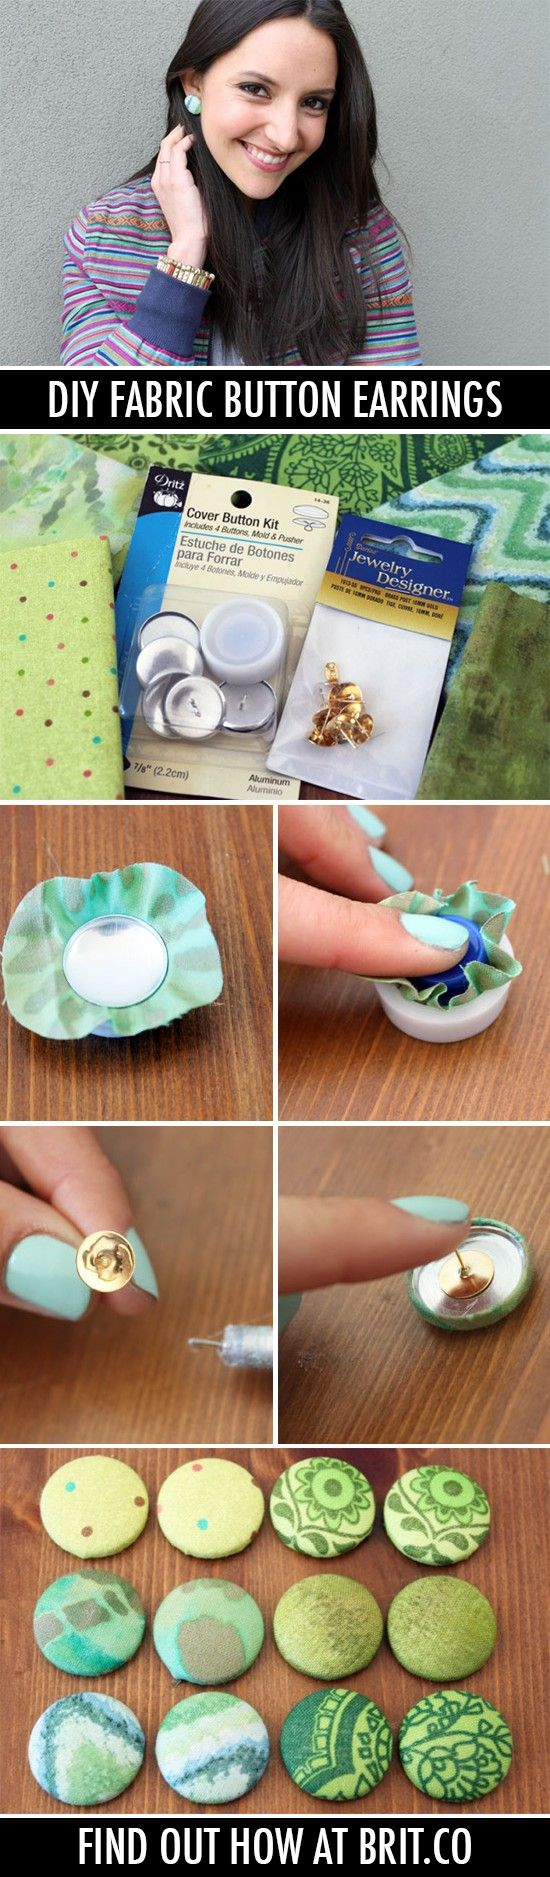 DIY Fabric Button Earrings | Brit + Co.